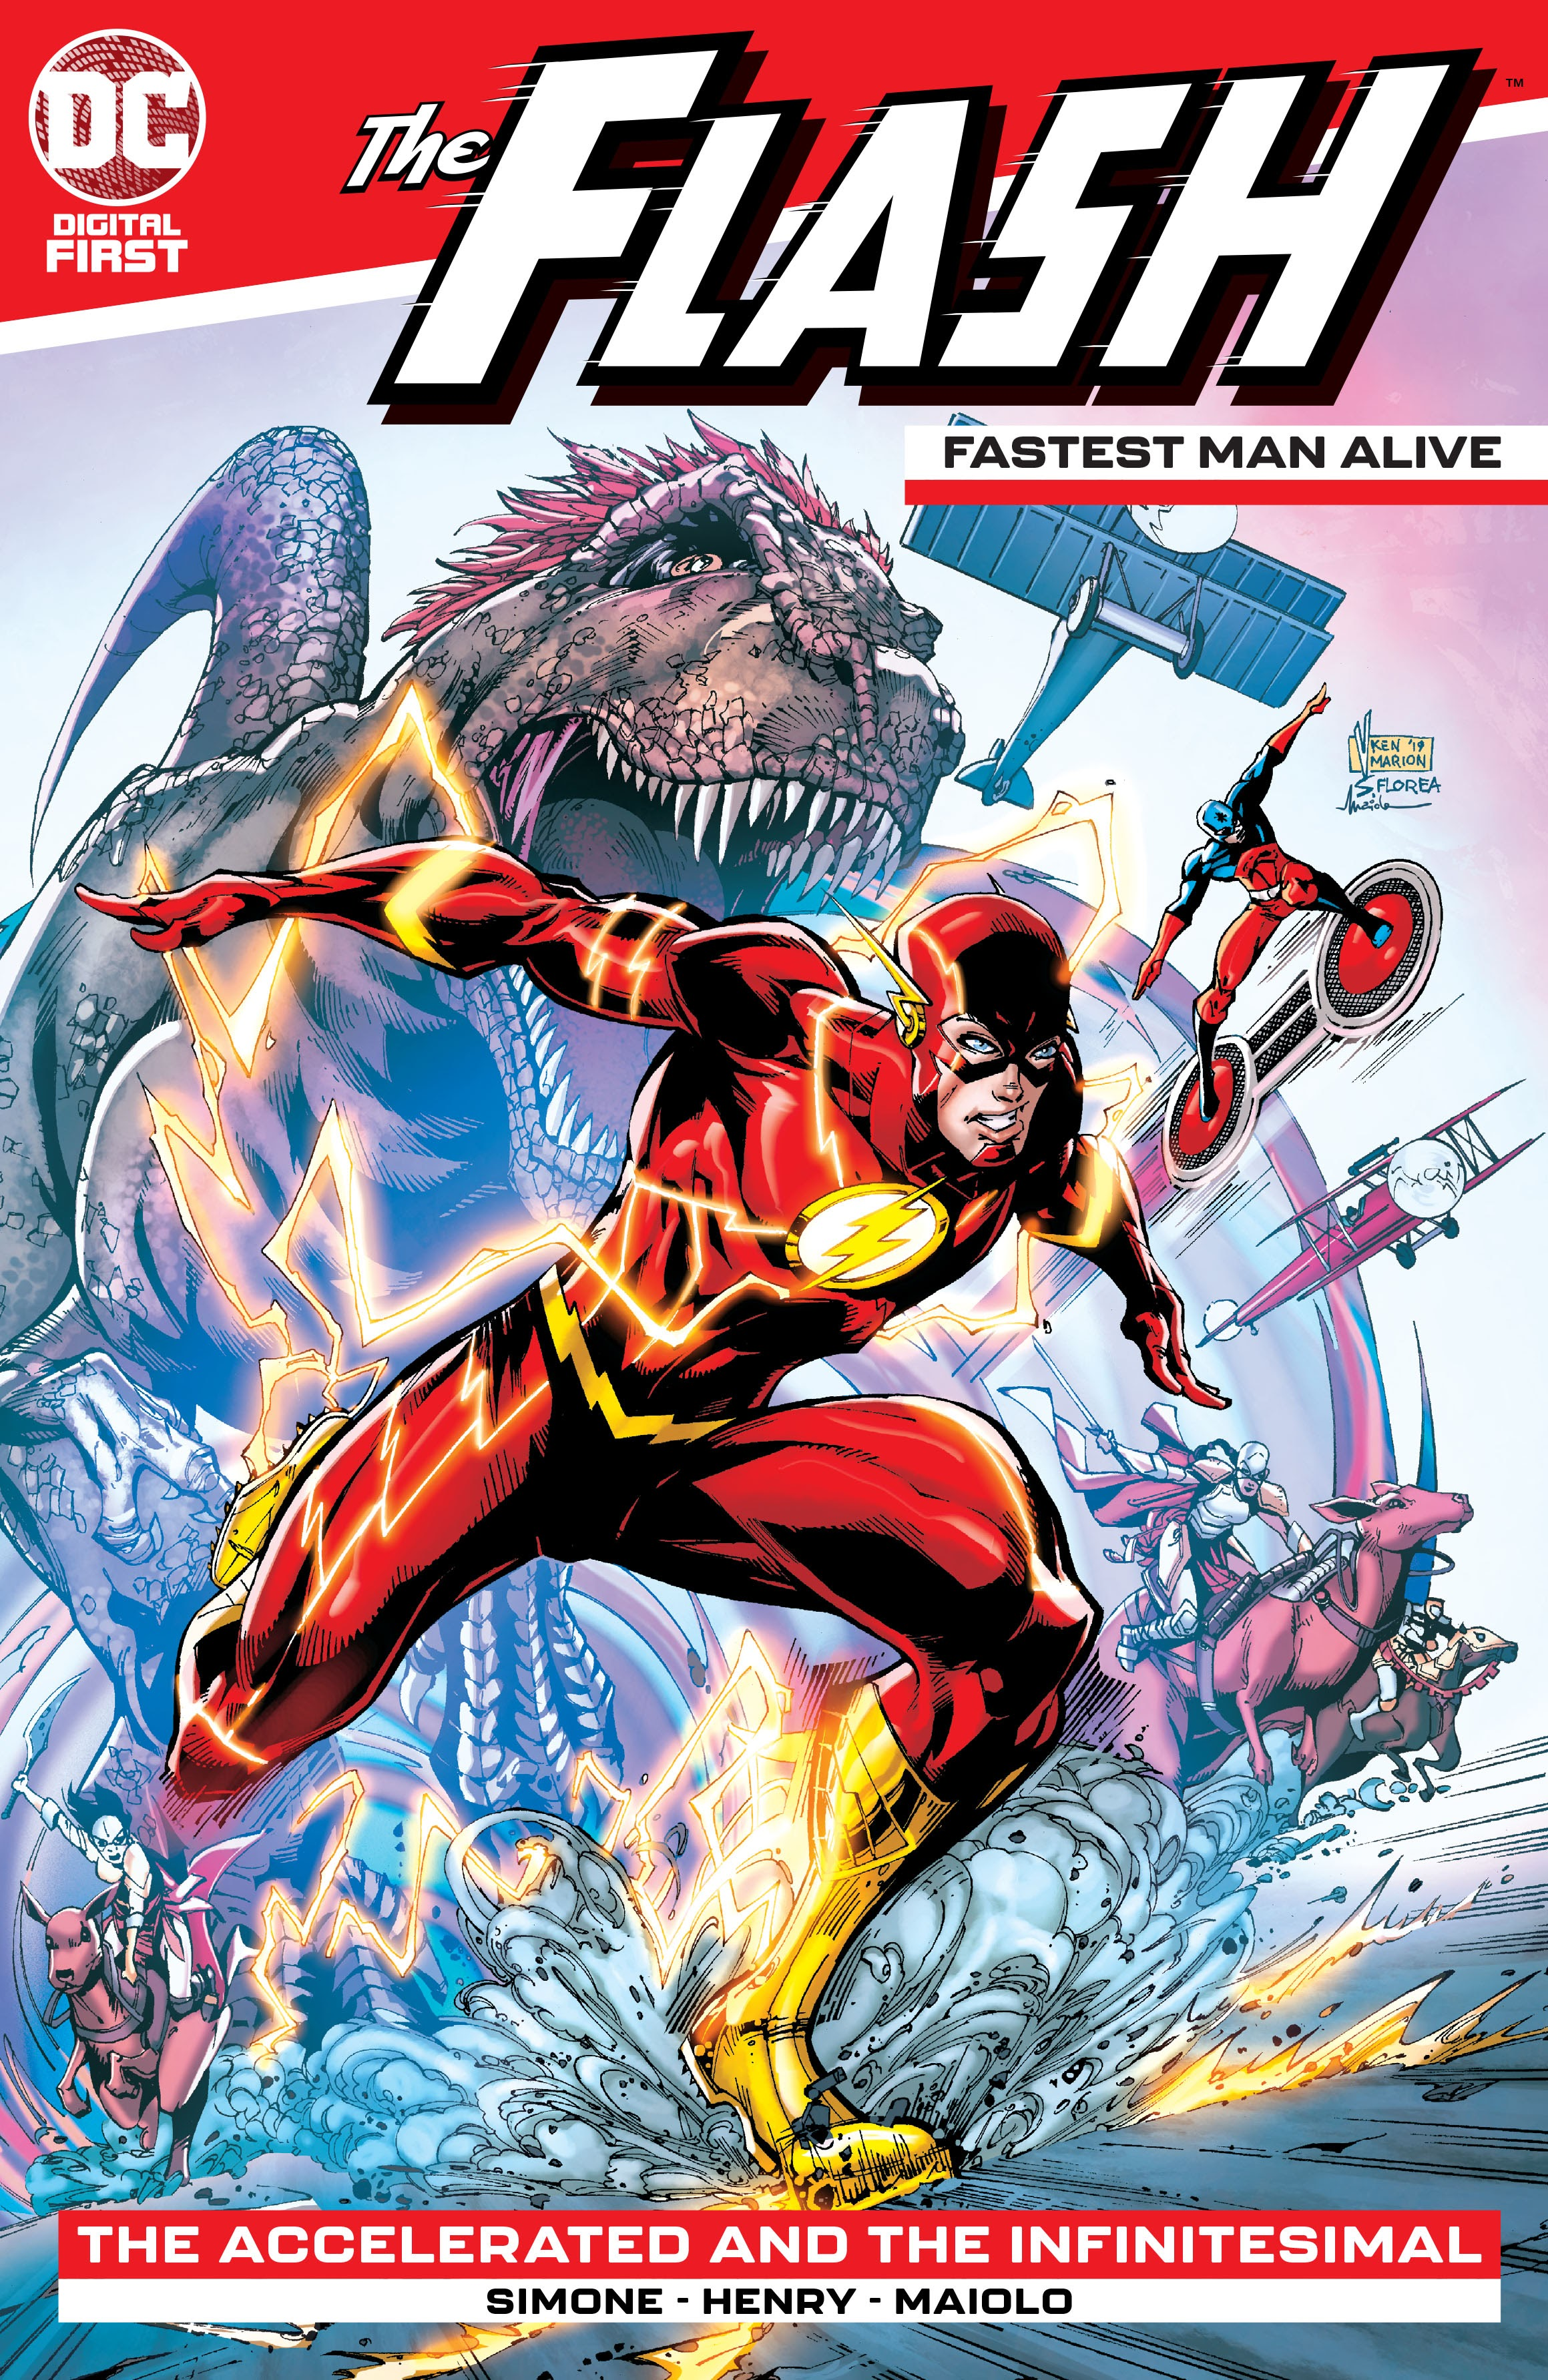 The Flash: Fastest Man Alive Vol 1 3 (Digital)